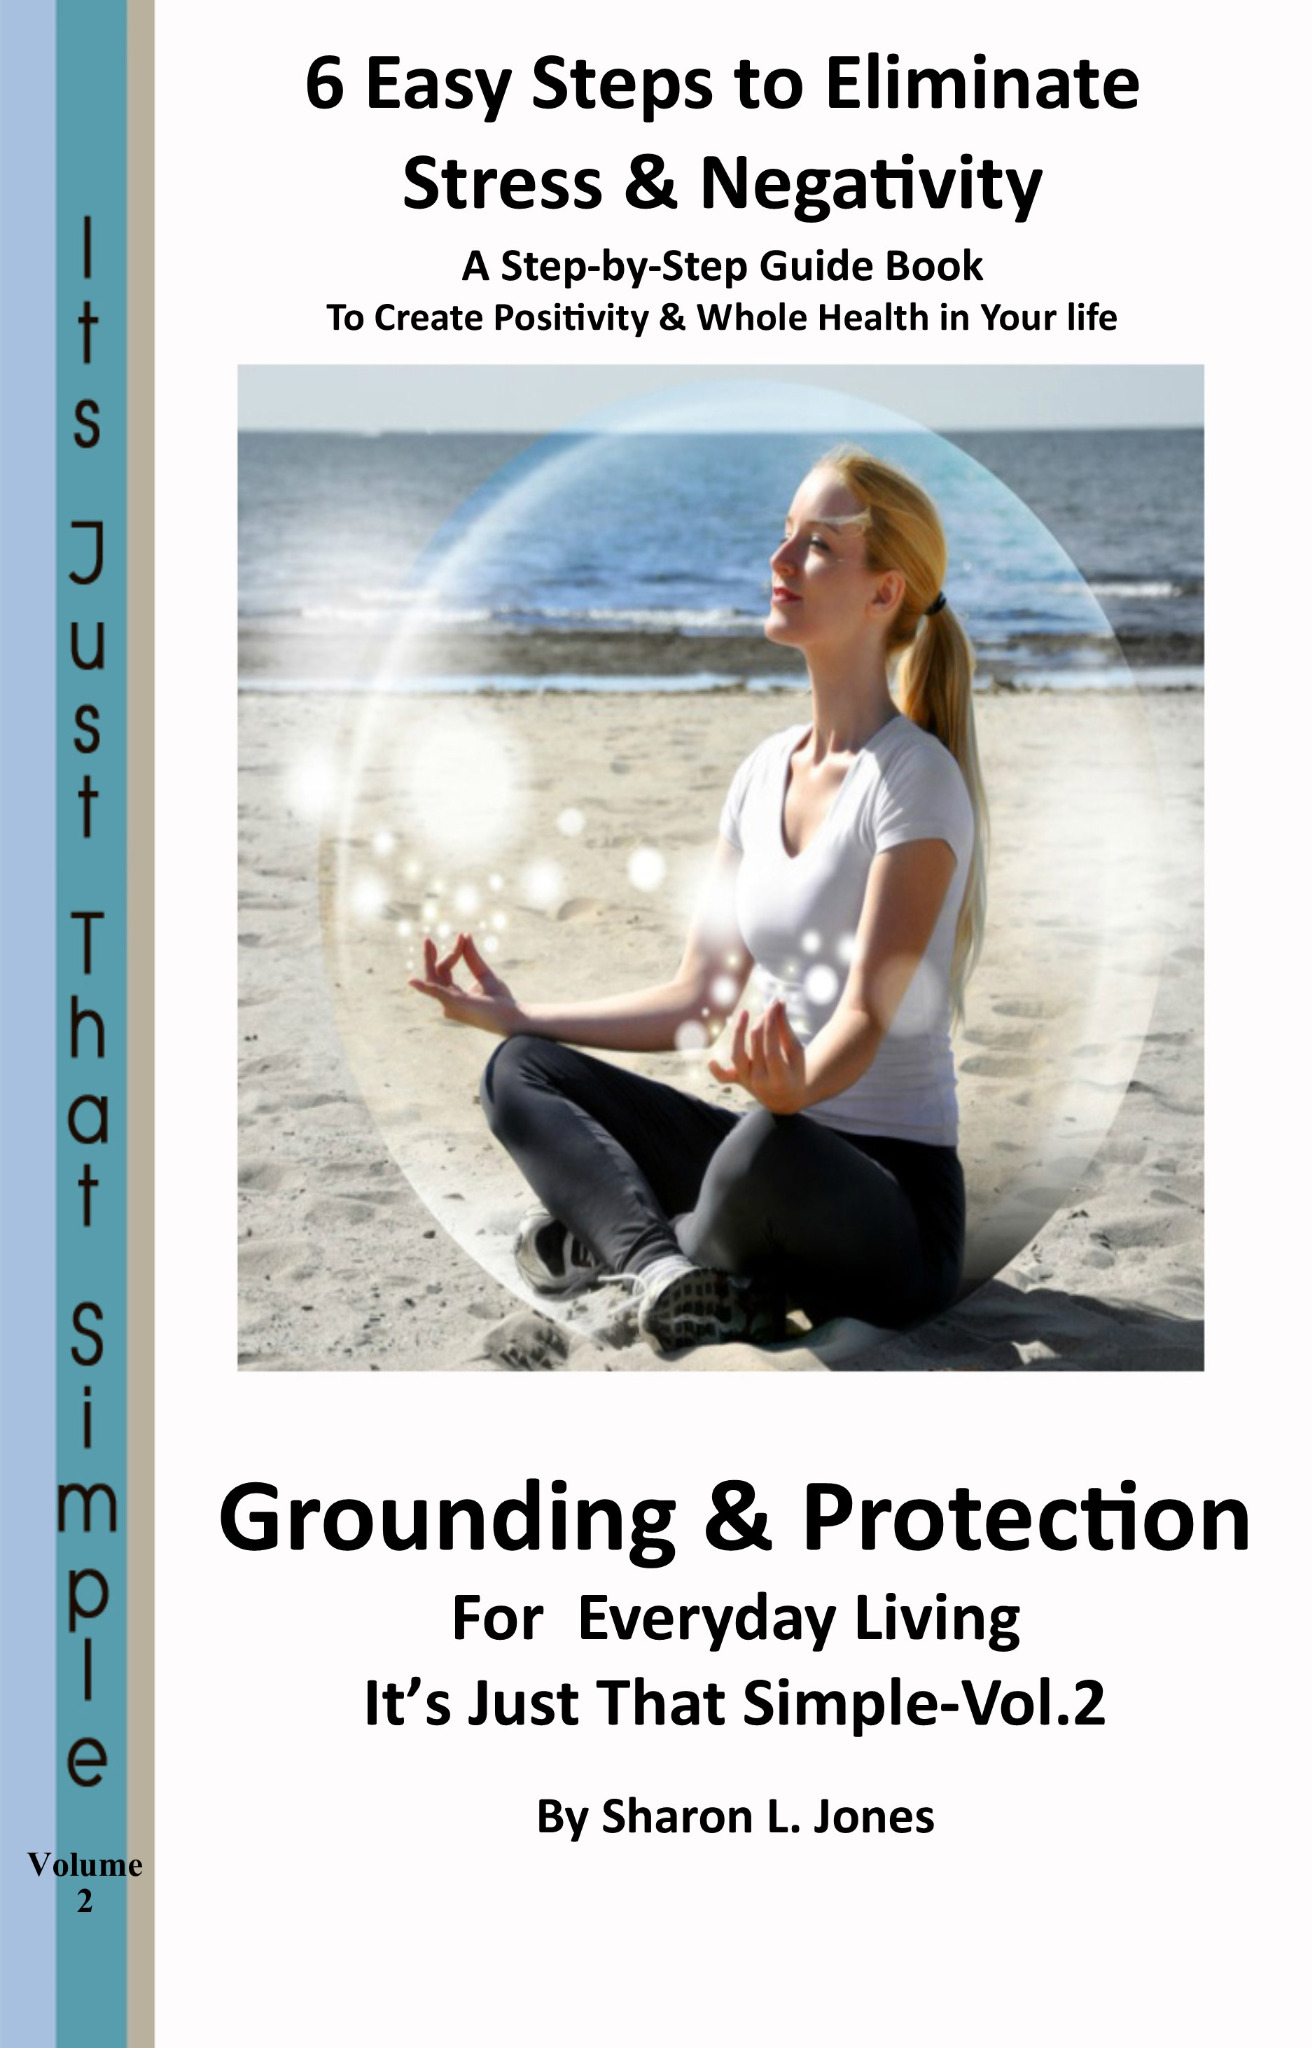 PDF Version of Grounding & Protection For Everyday Living